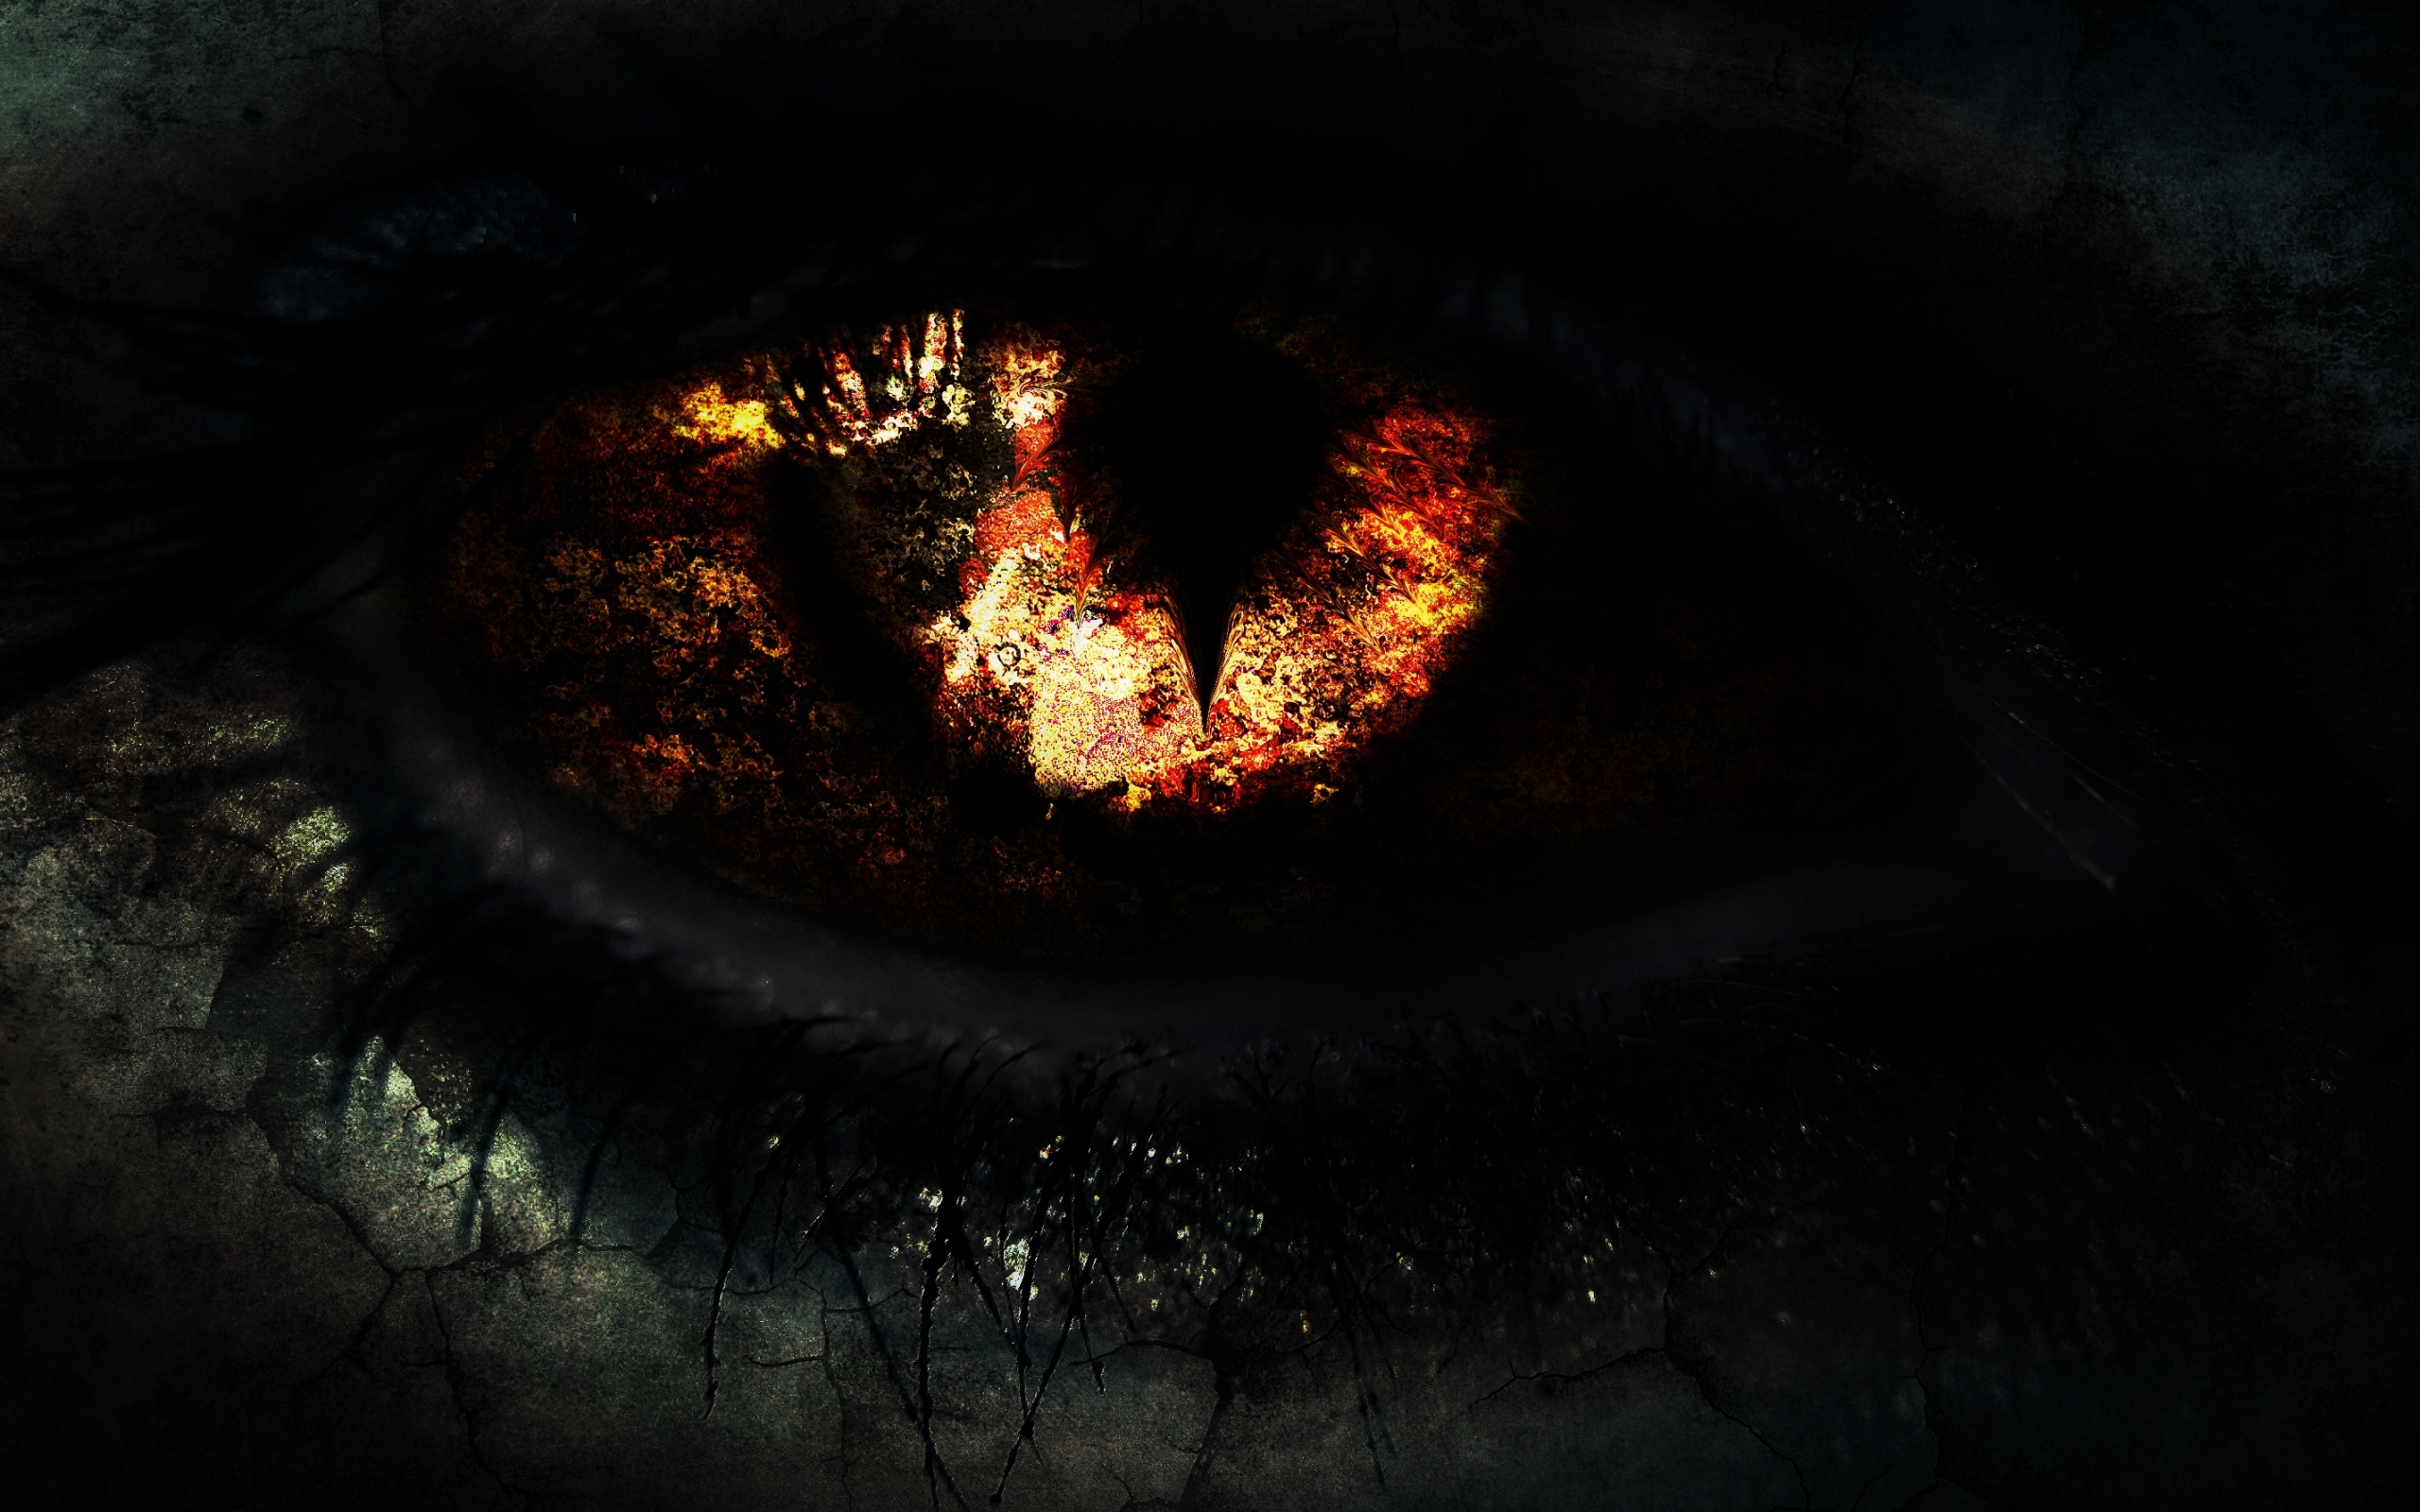 44 Eye HD Wallpapers | Backgrounds - Wallpaper Abyss